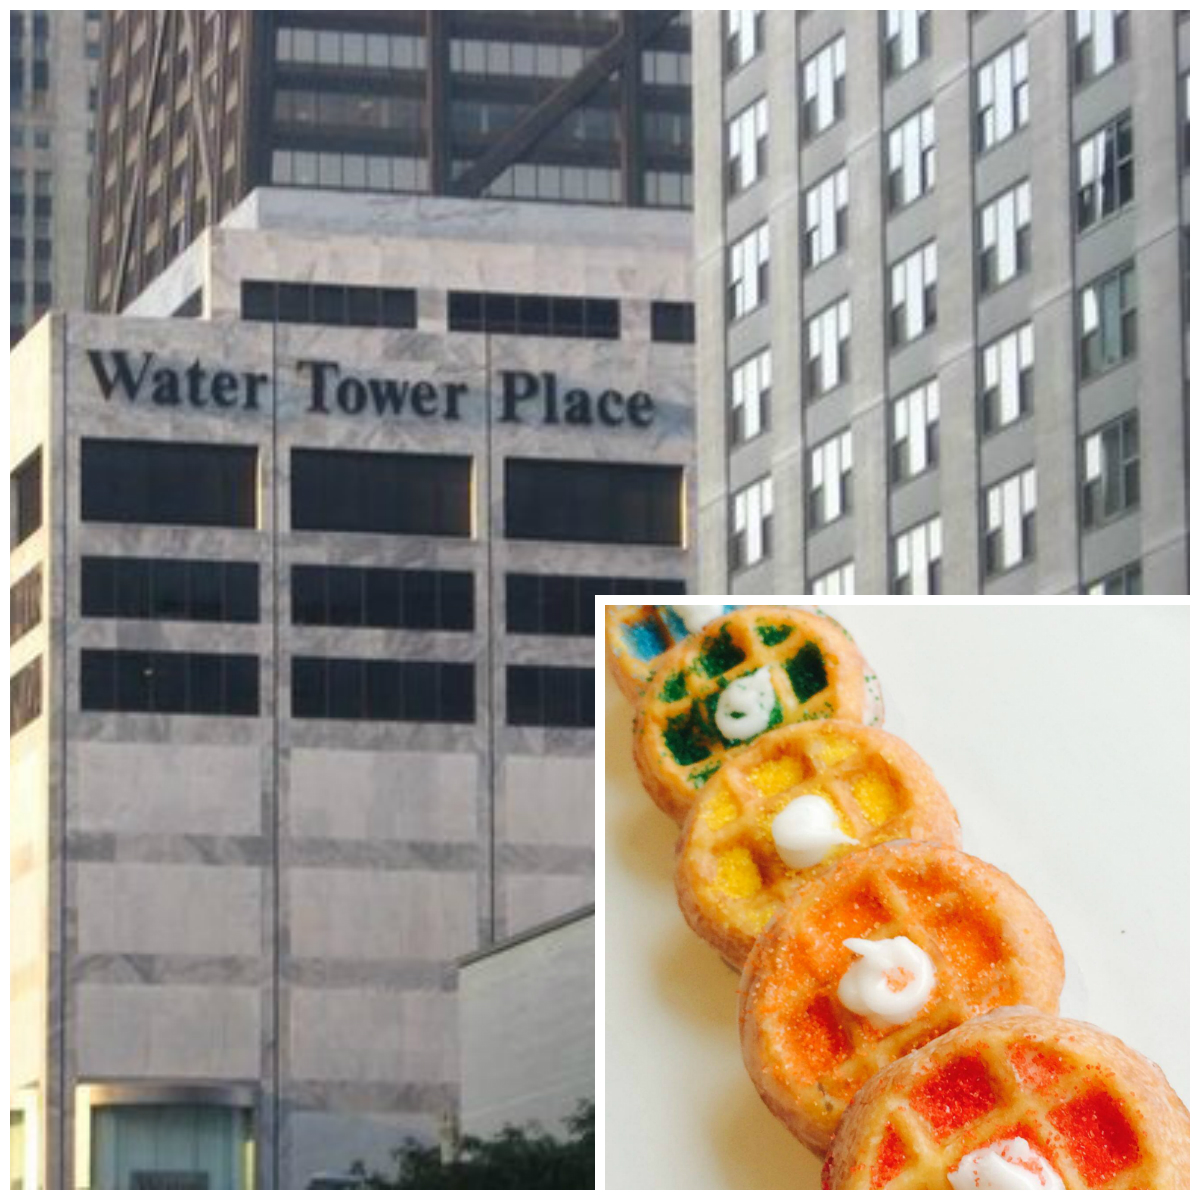 Waffles Cafe's wonuts are coming to Water Tower Place.